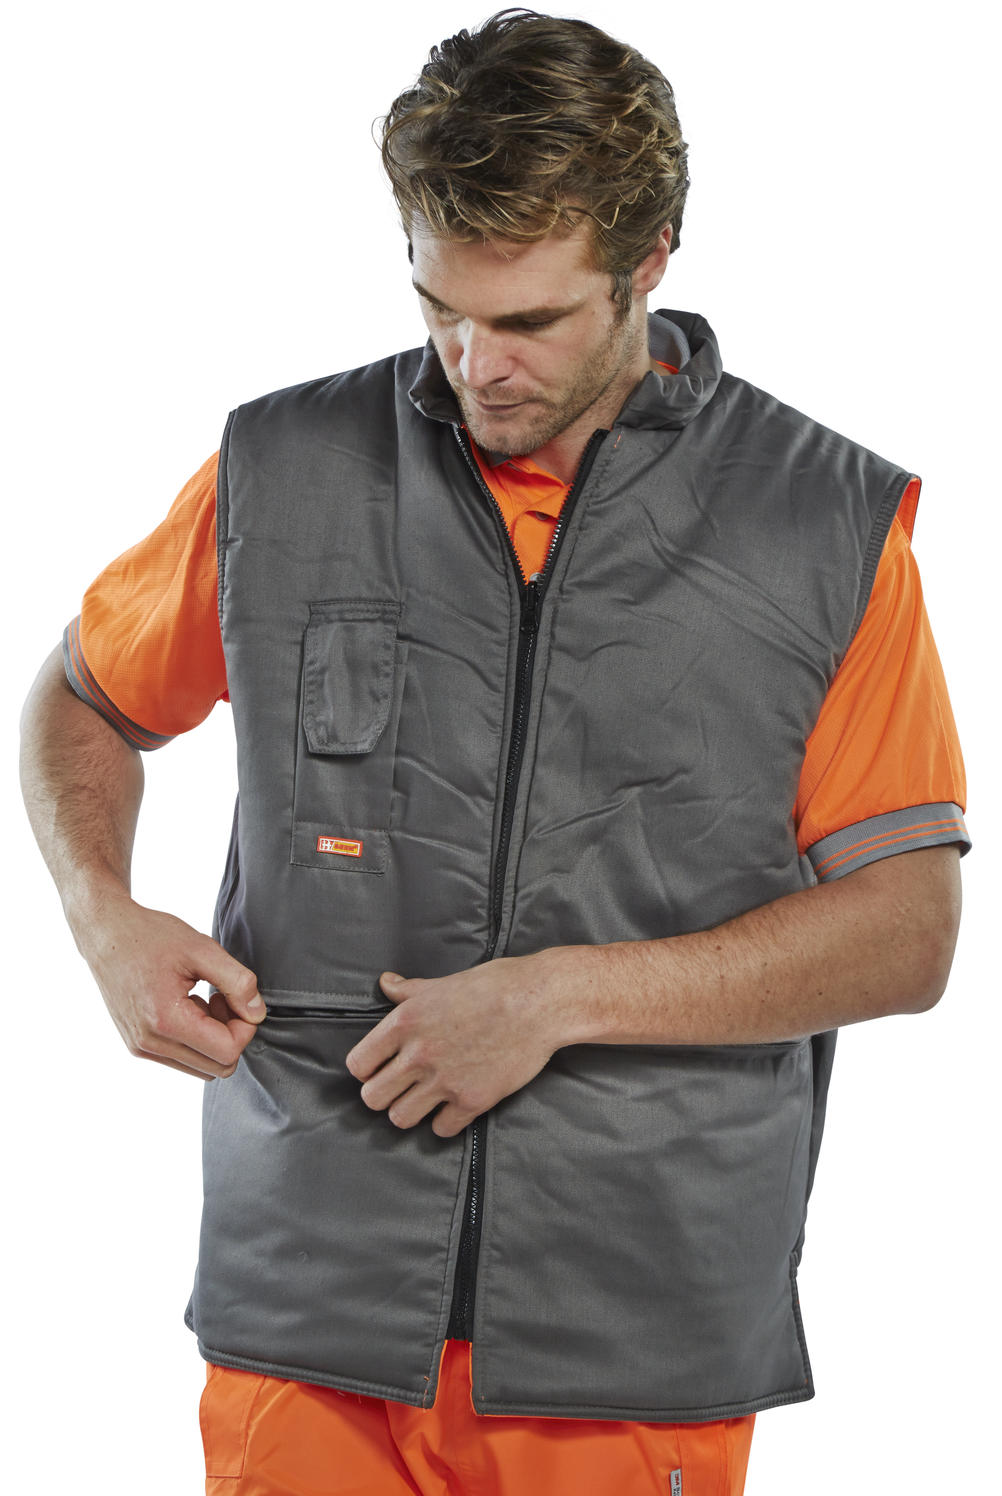 4 IN 1 BODYWARMER - BWENG